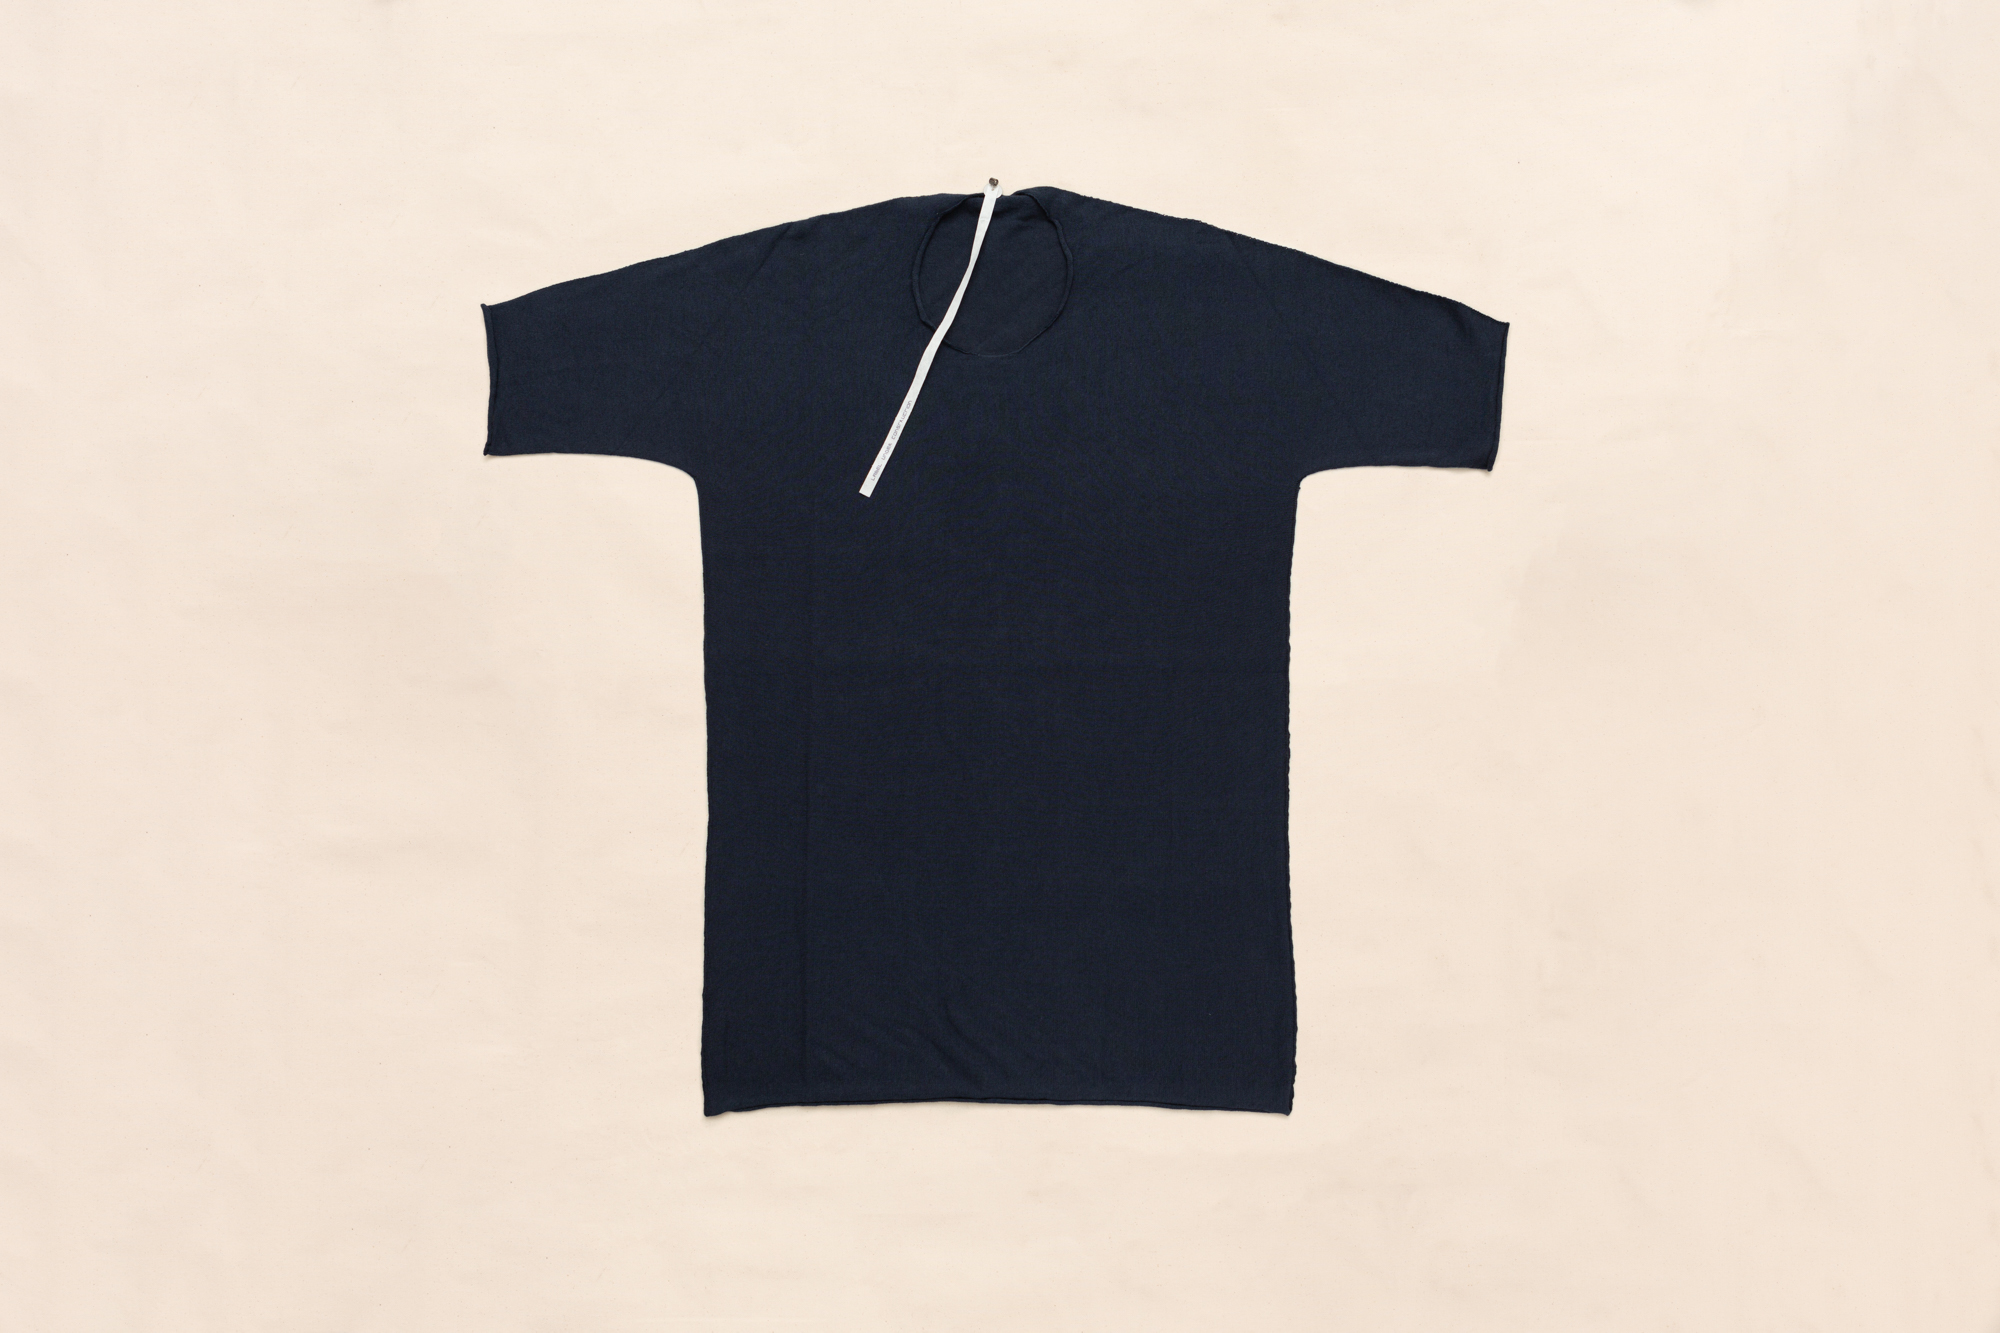 ARCHED T-SHIRT33/8